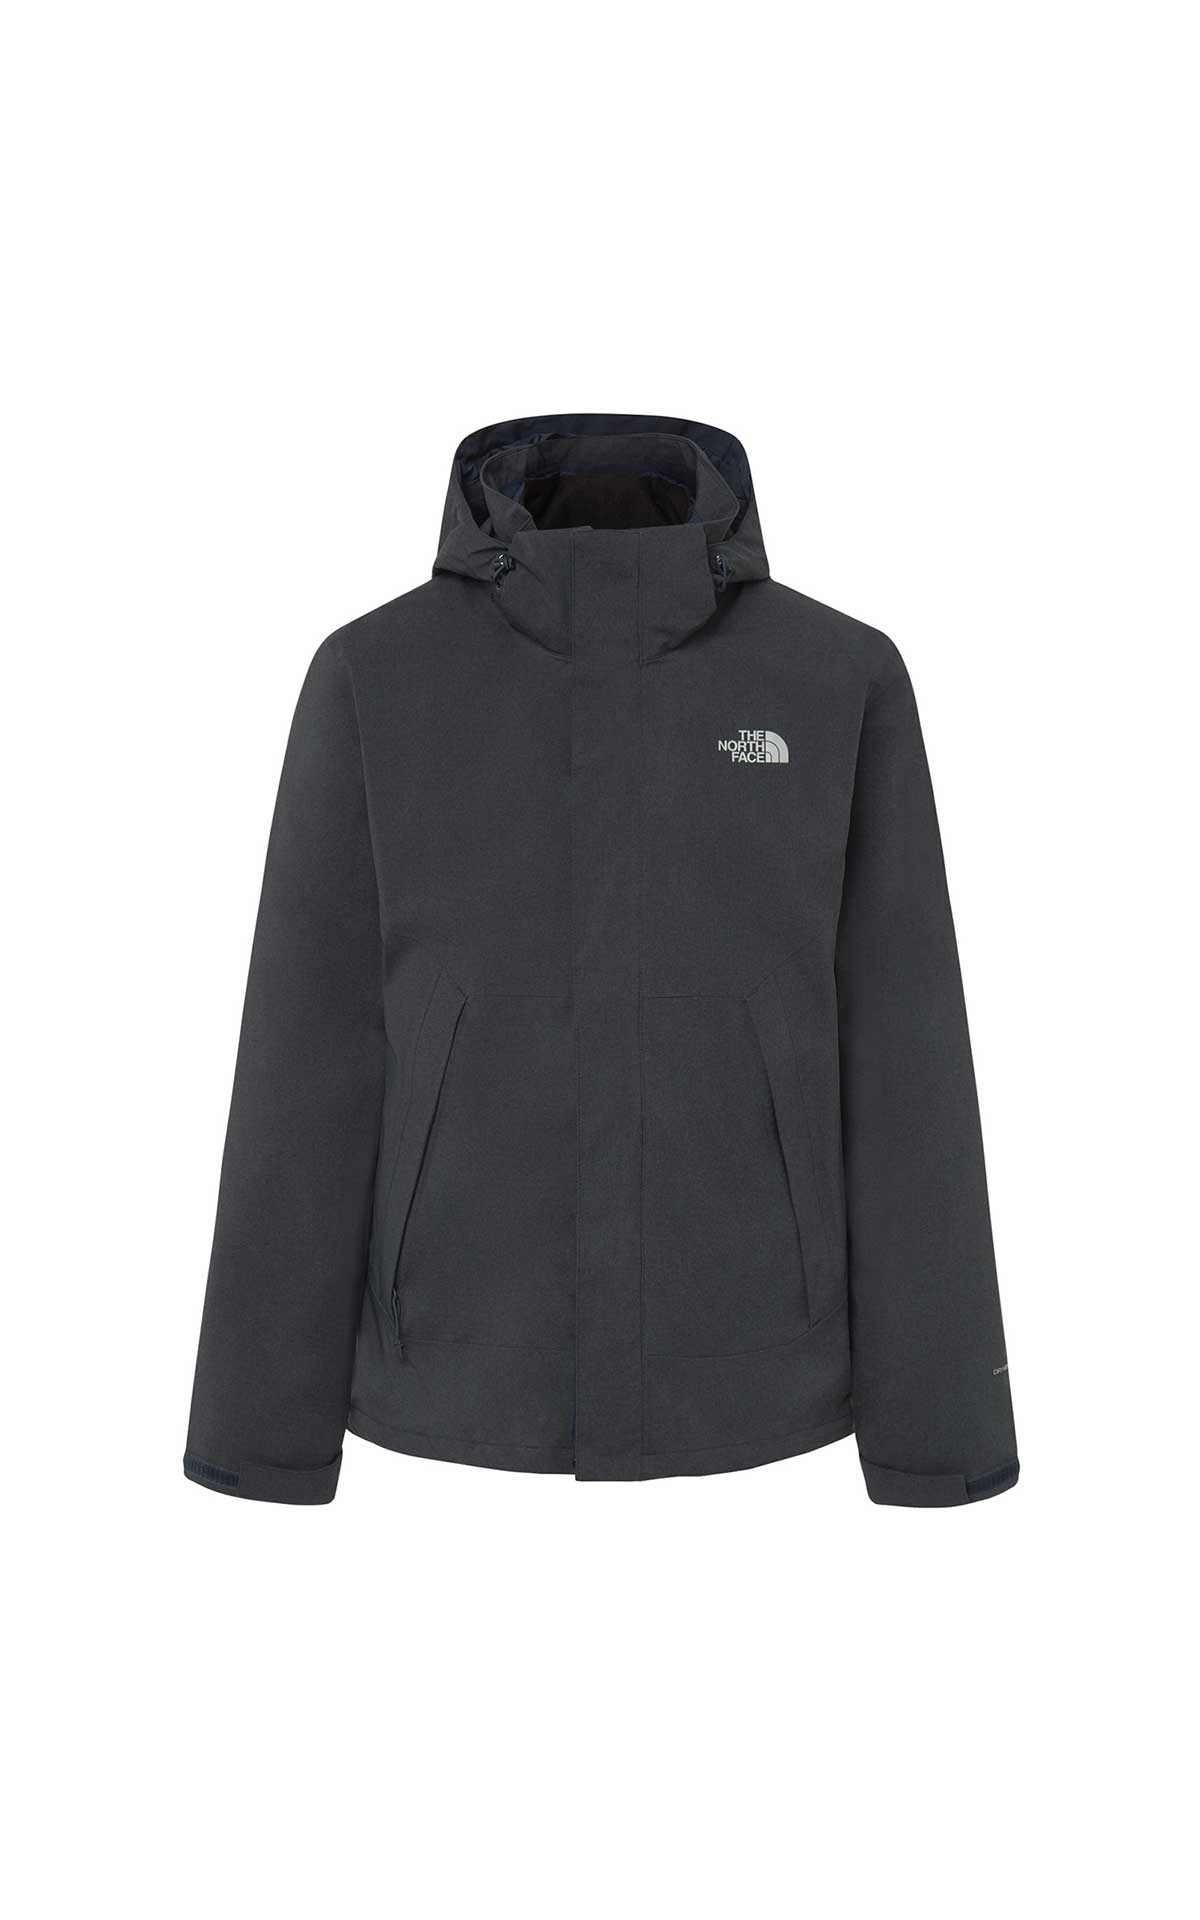 Chaqueta gris esquí hombre The North Face